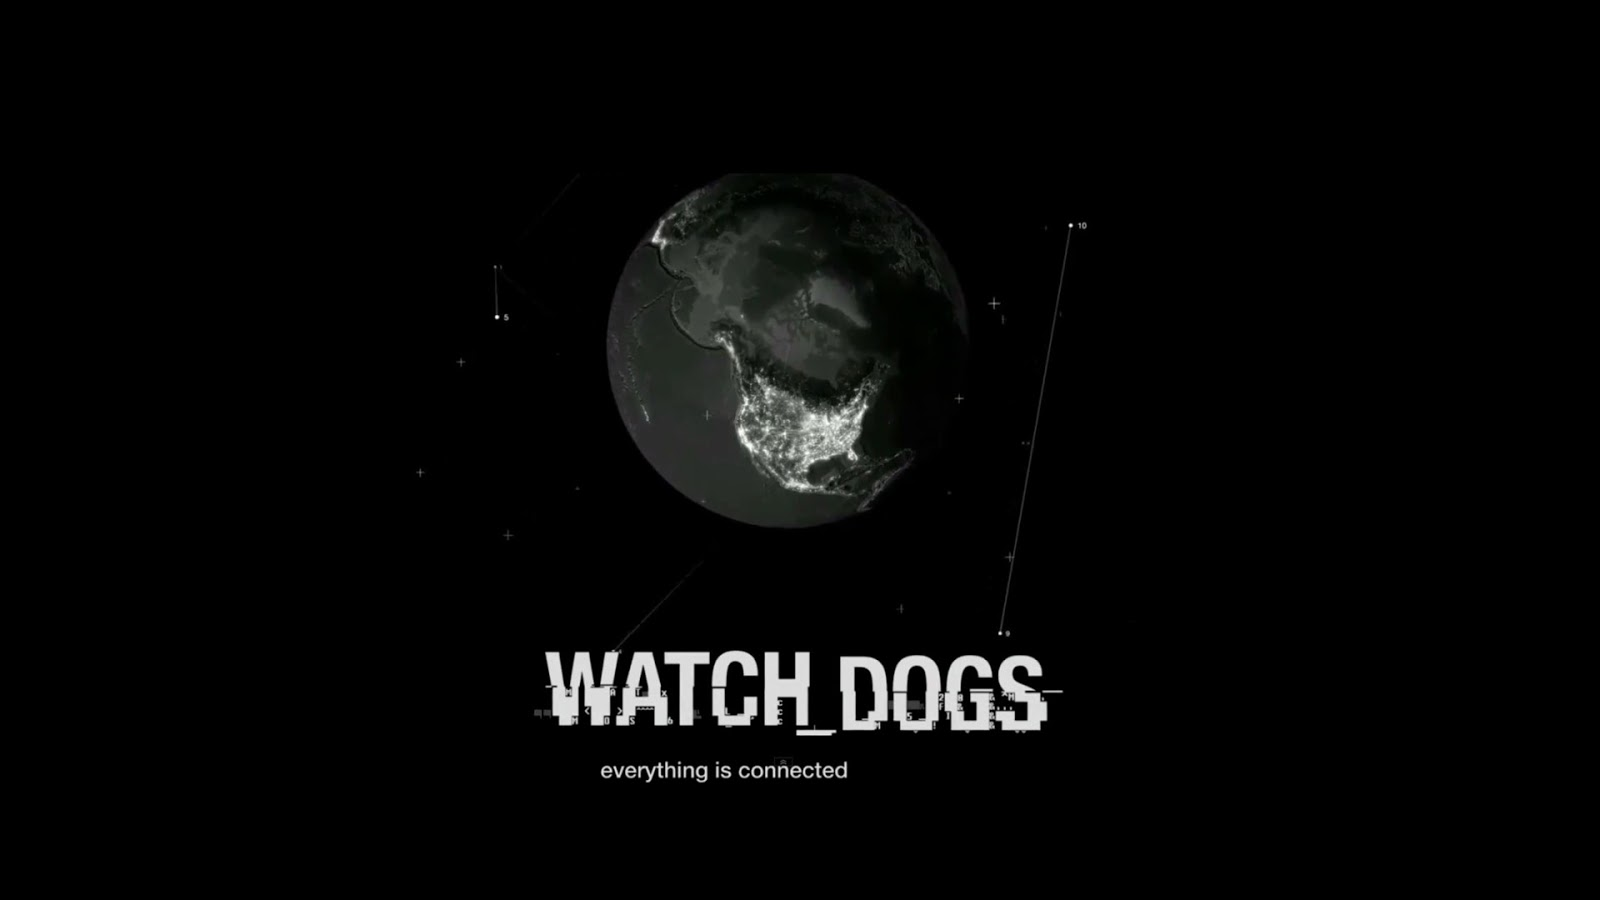 http://2.bp.blogspot.com/-ScEsQ9UjHDI/UTd_vpxBX1I/AAAAAAAAM_0/0vSzpWfkWNE/s1600/watch_dogs_wallpapers_hd+(2).jpg